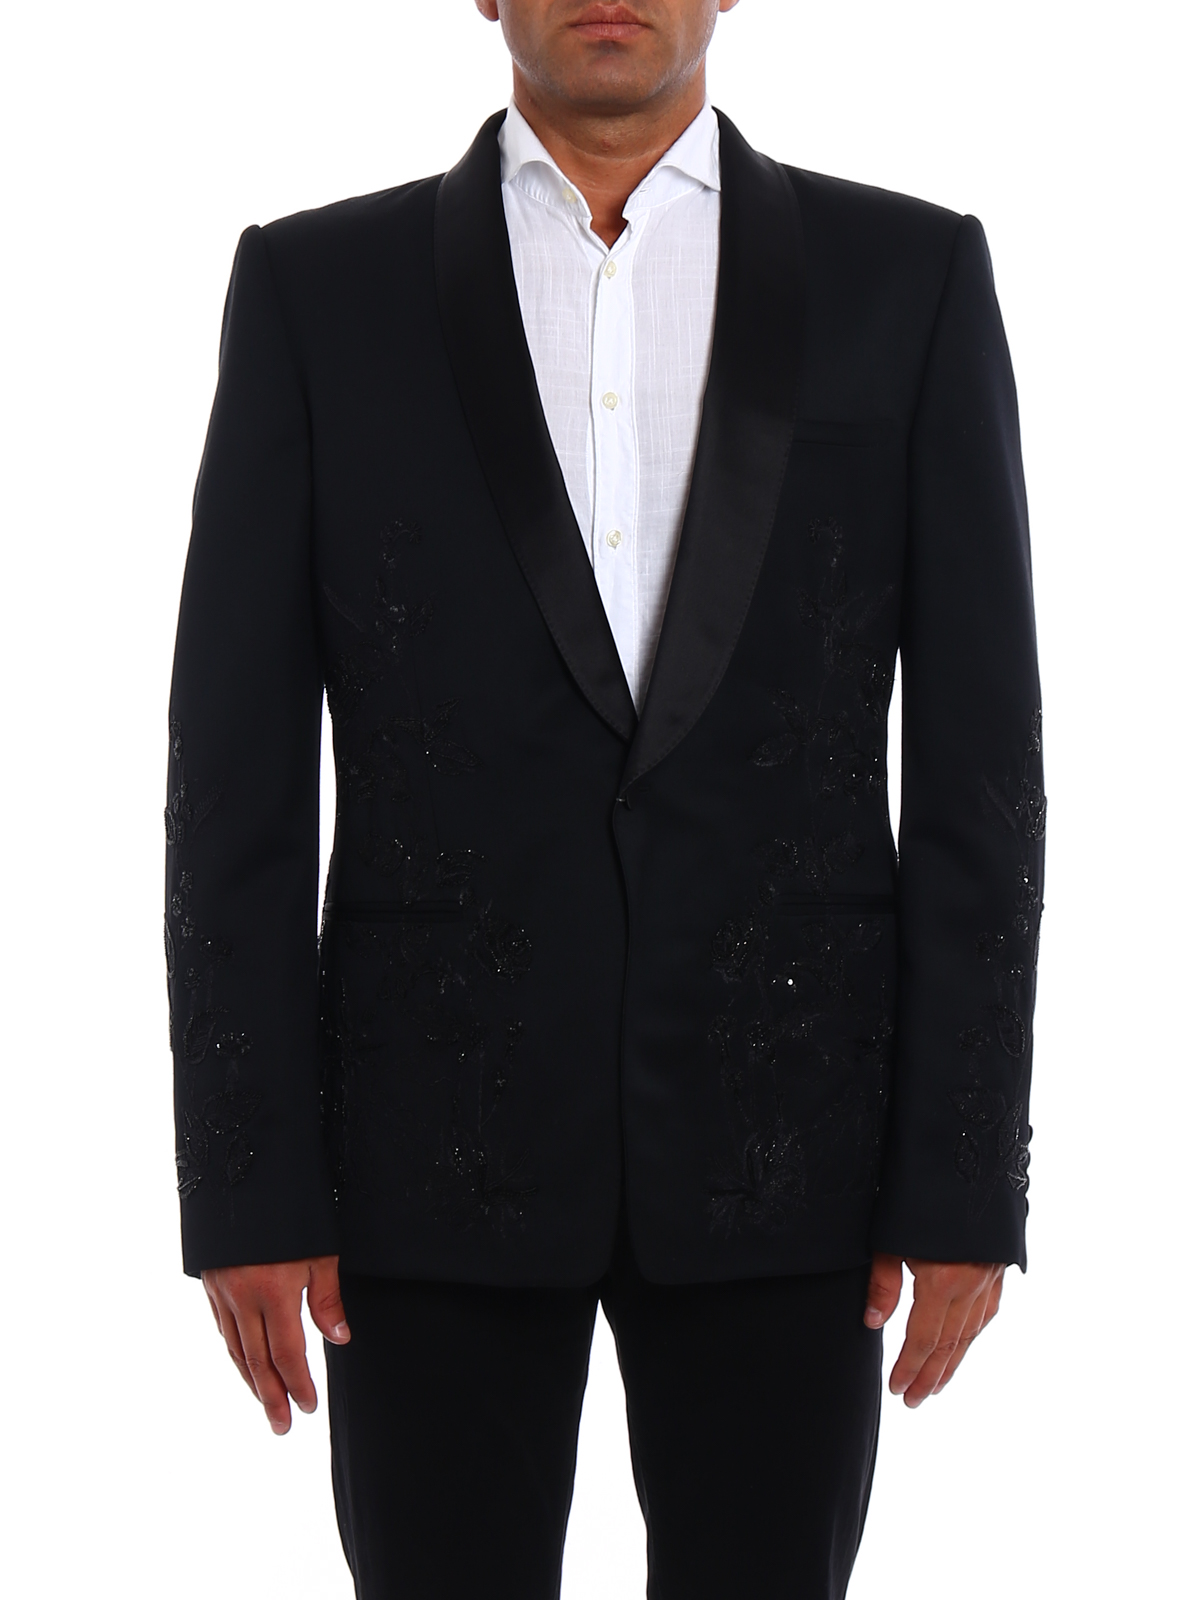 Embroidered tuxedo jacket by alexander mcqueen tailored